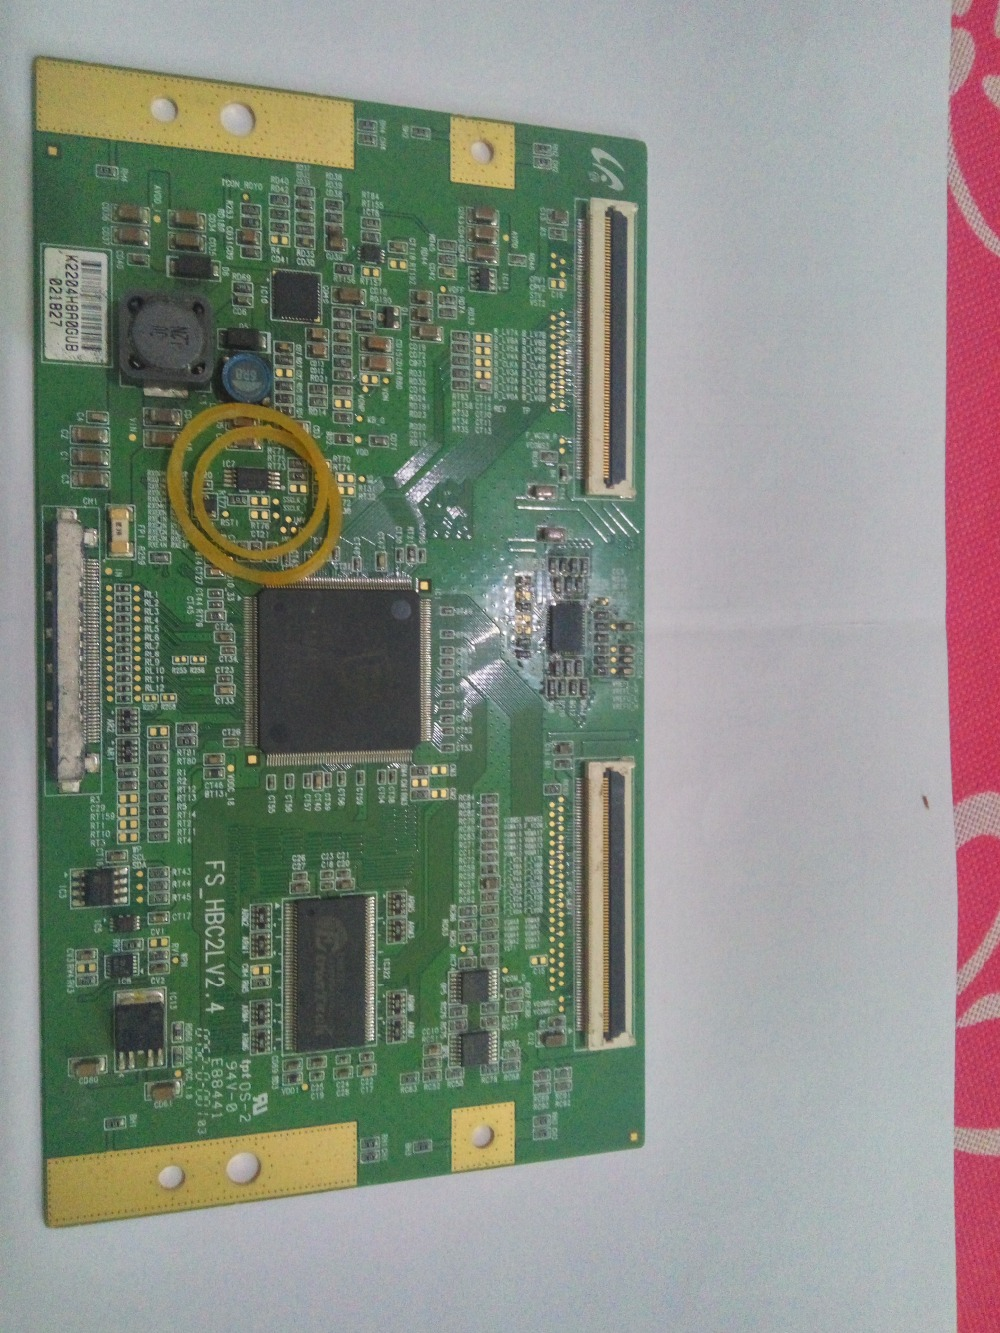 LOGIC BOARD FS_HBC2LV2.4 Have Two Types LCD Board FS-HBC2LV2.4 For Connect With KLV-52V440A LTY520HB07 T-CON Connect Board